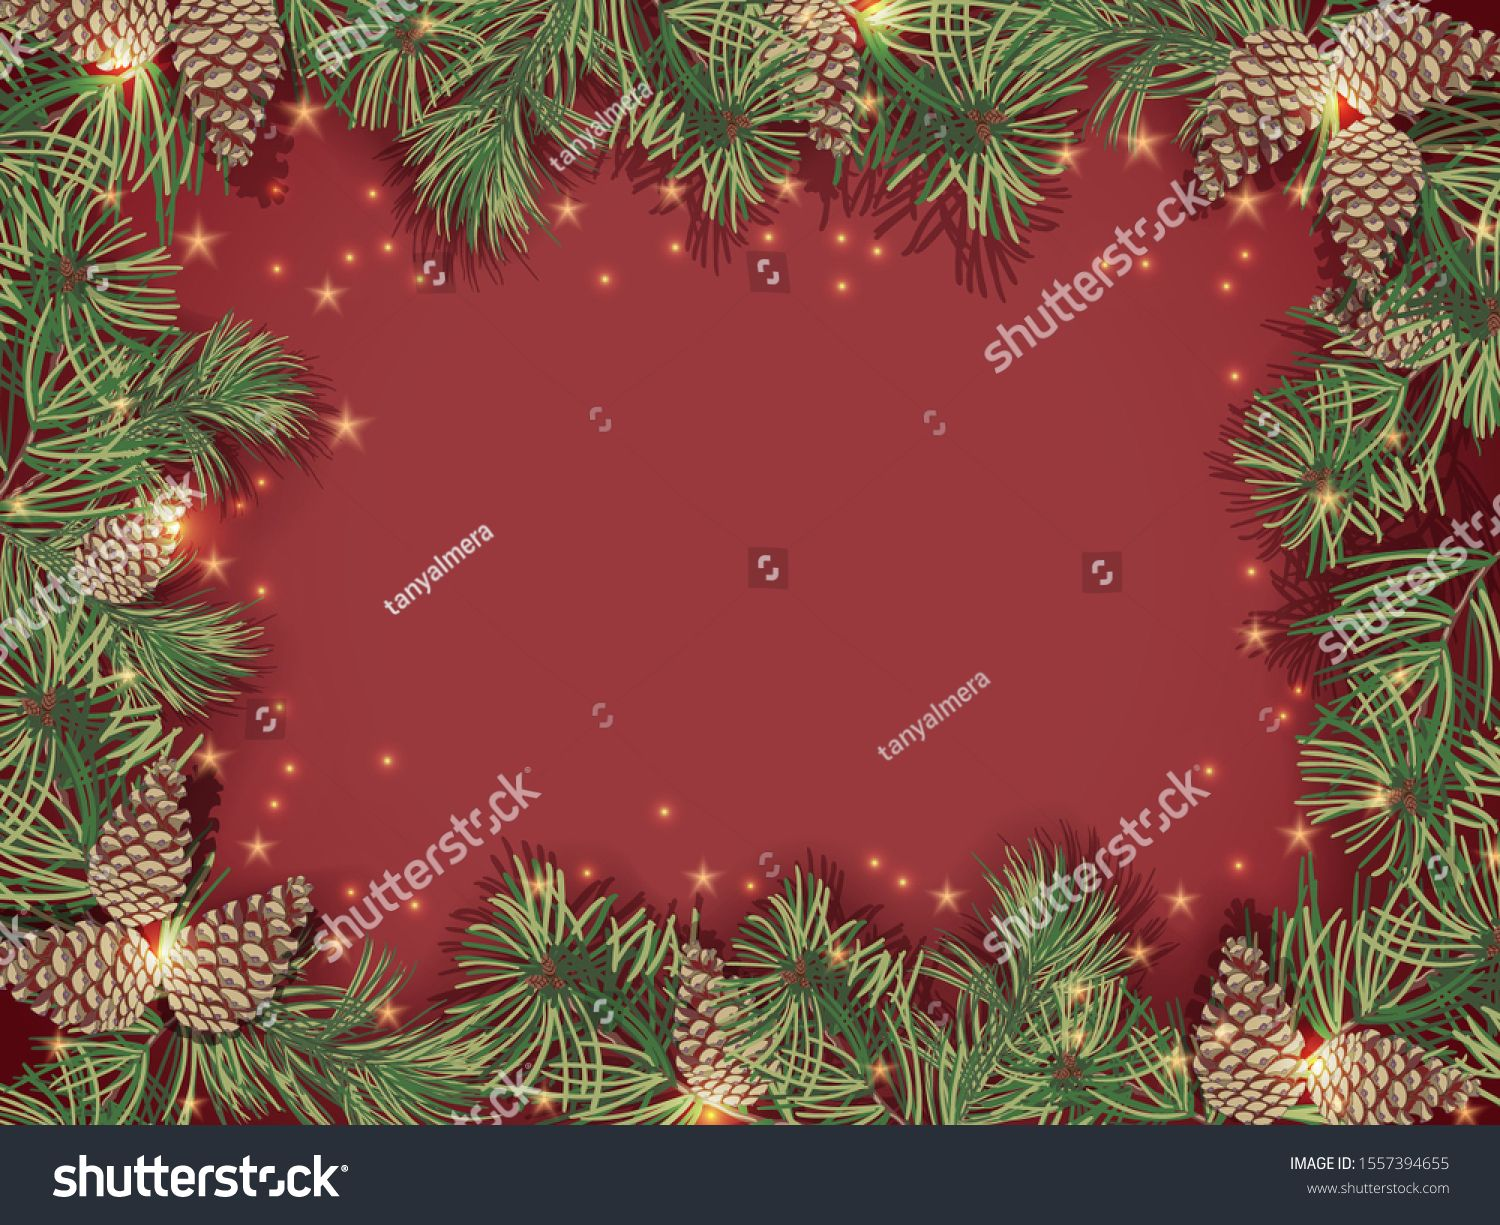 Border Of Green Christmas Tree Branches And Pine Cones On Red Background Sparkling Holiday Lights A Green Christmas Tree Christmas Tree Branches Tree Branches